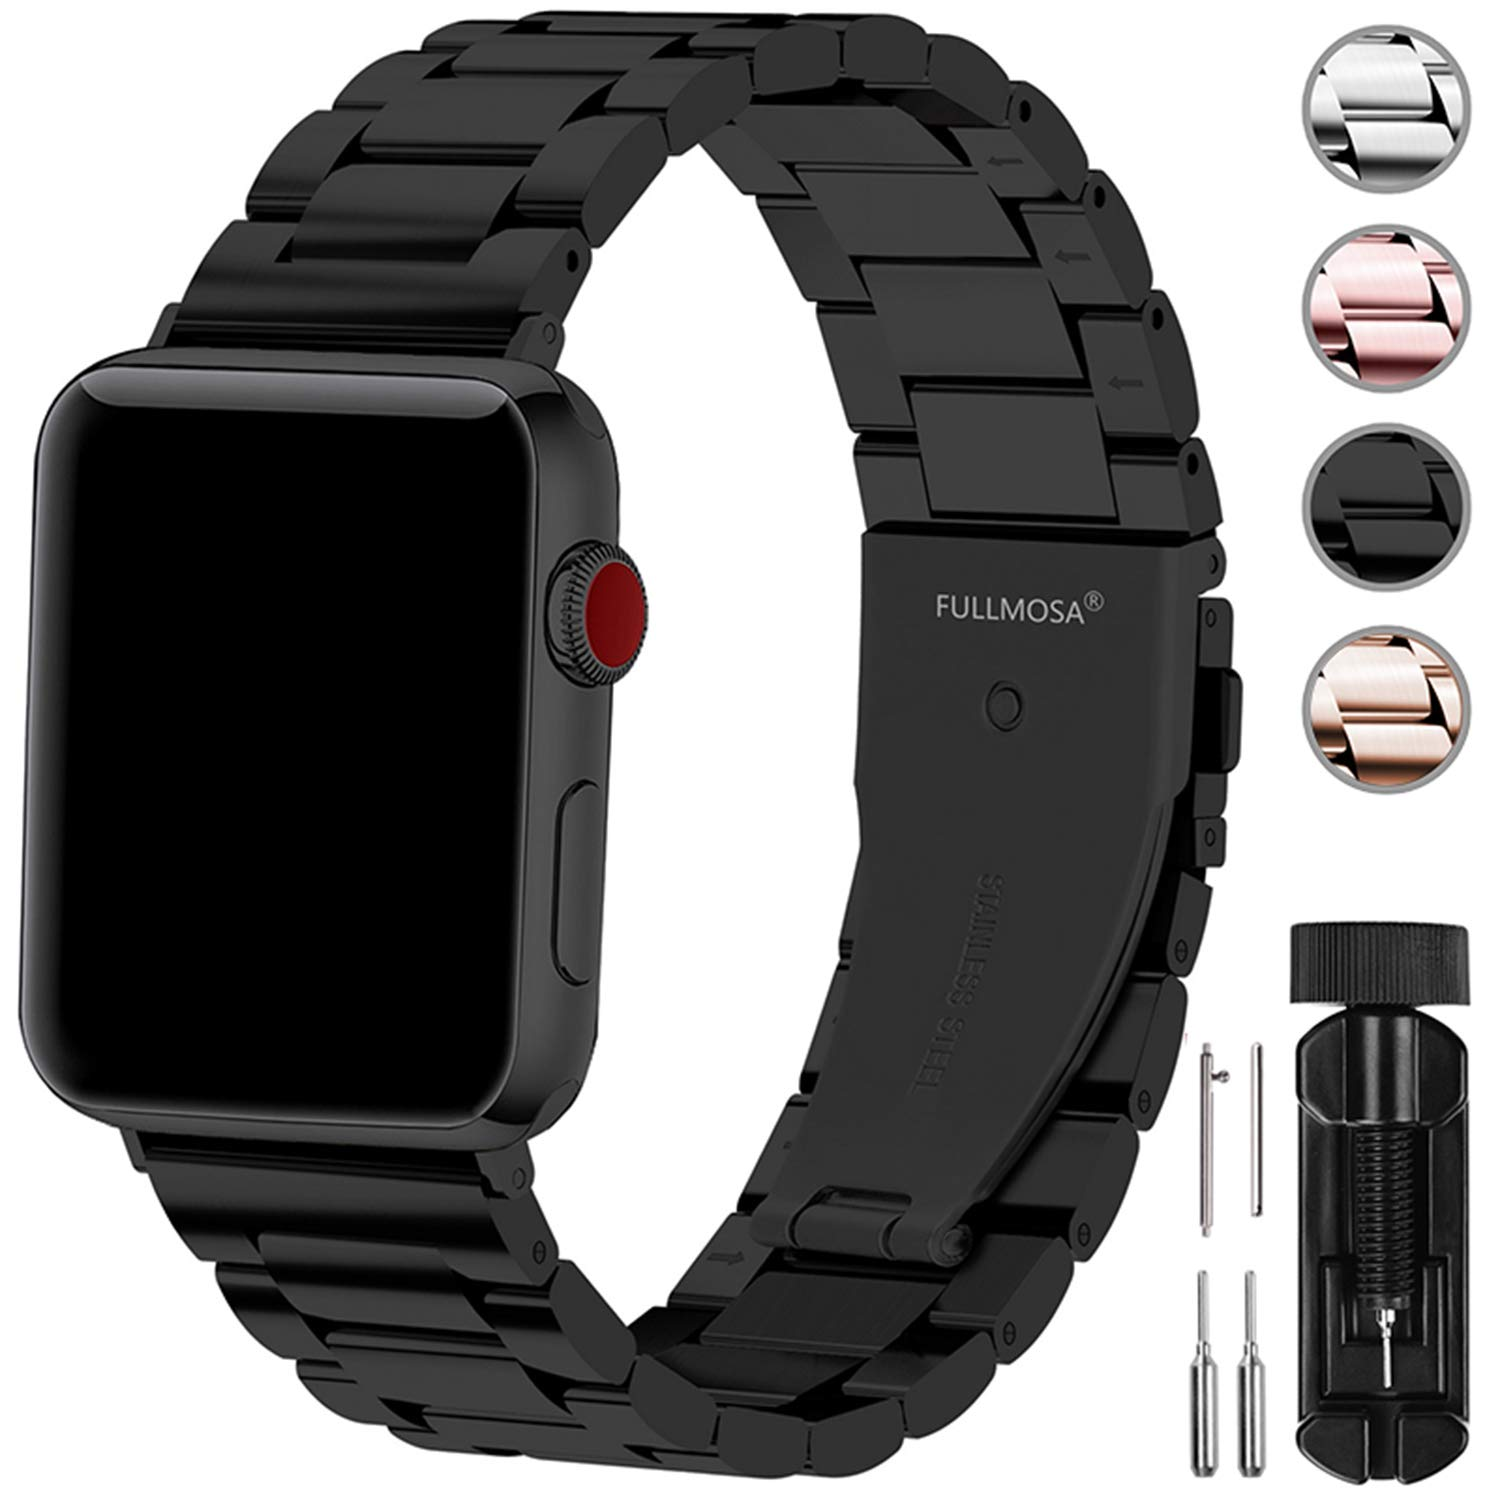 Fullmosa Compatible Apple Watch Band 42mm 44mm 38mm 40mm, Stainless Steel Metal for Apple Watch Series 5 4 3 2 1 Bands, 42mm 44mm Black by Fullmosa